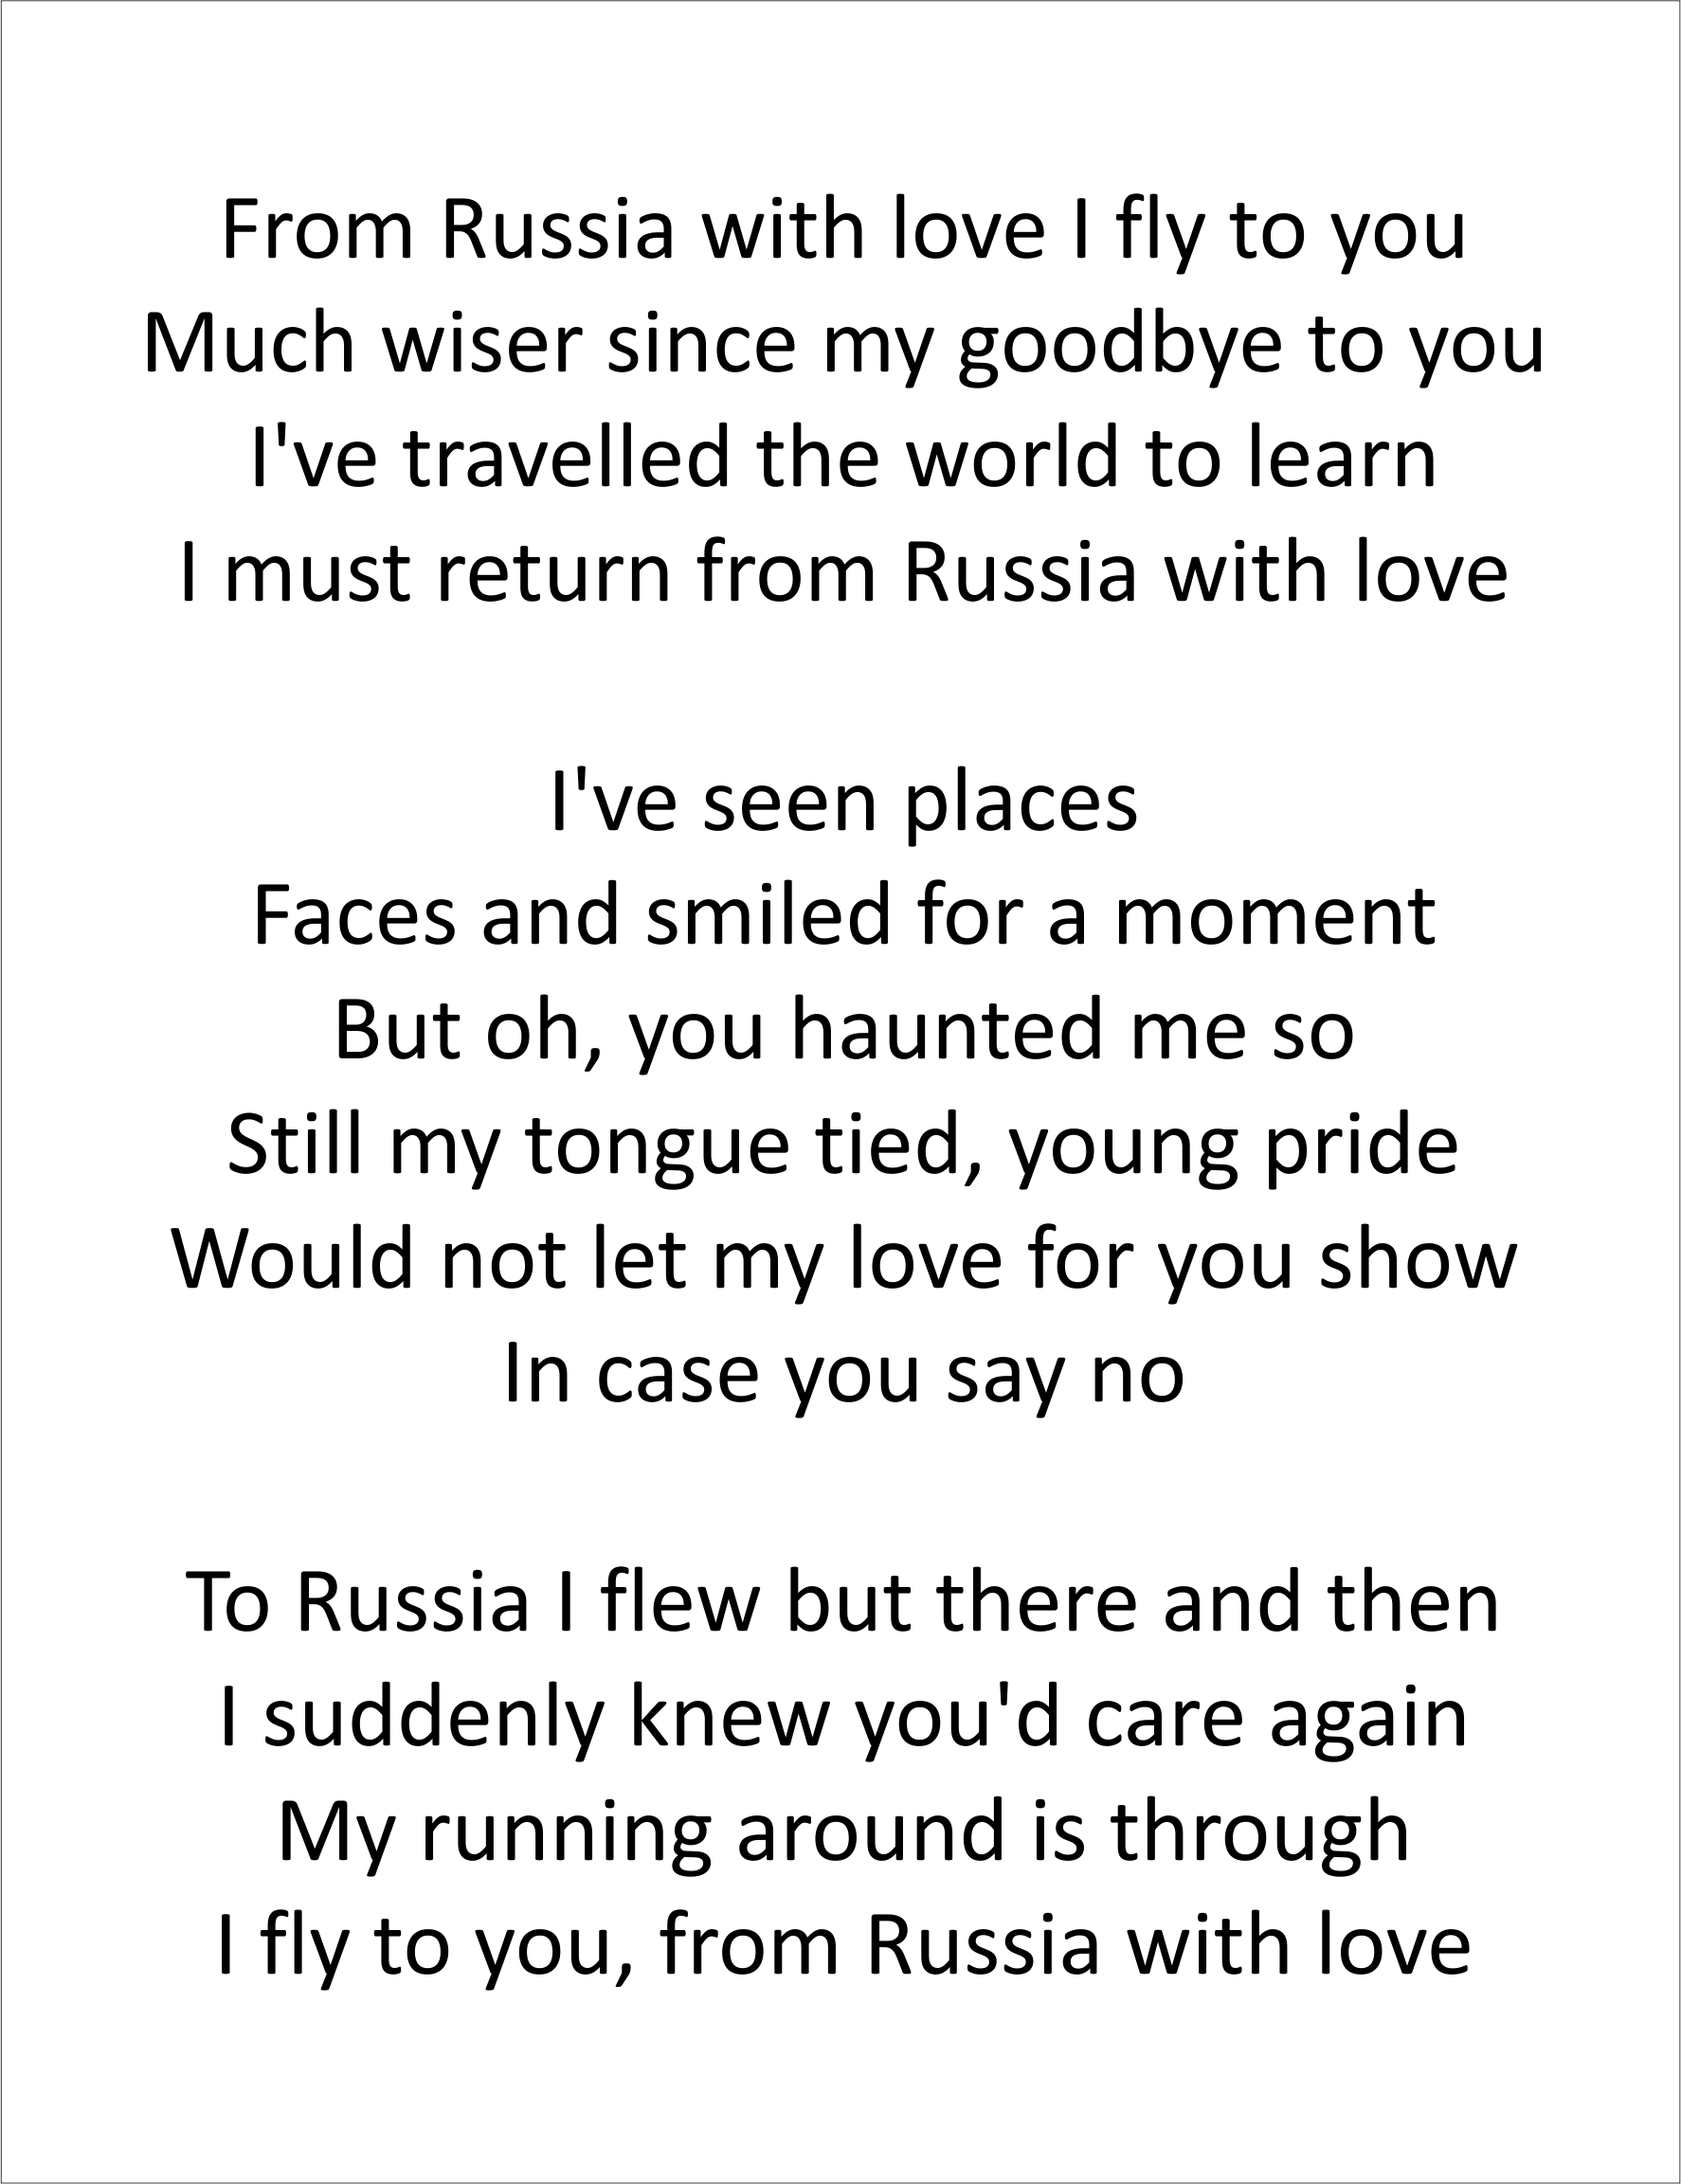 From Russia letra